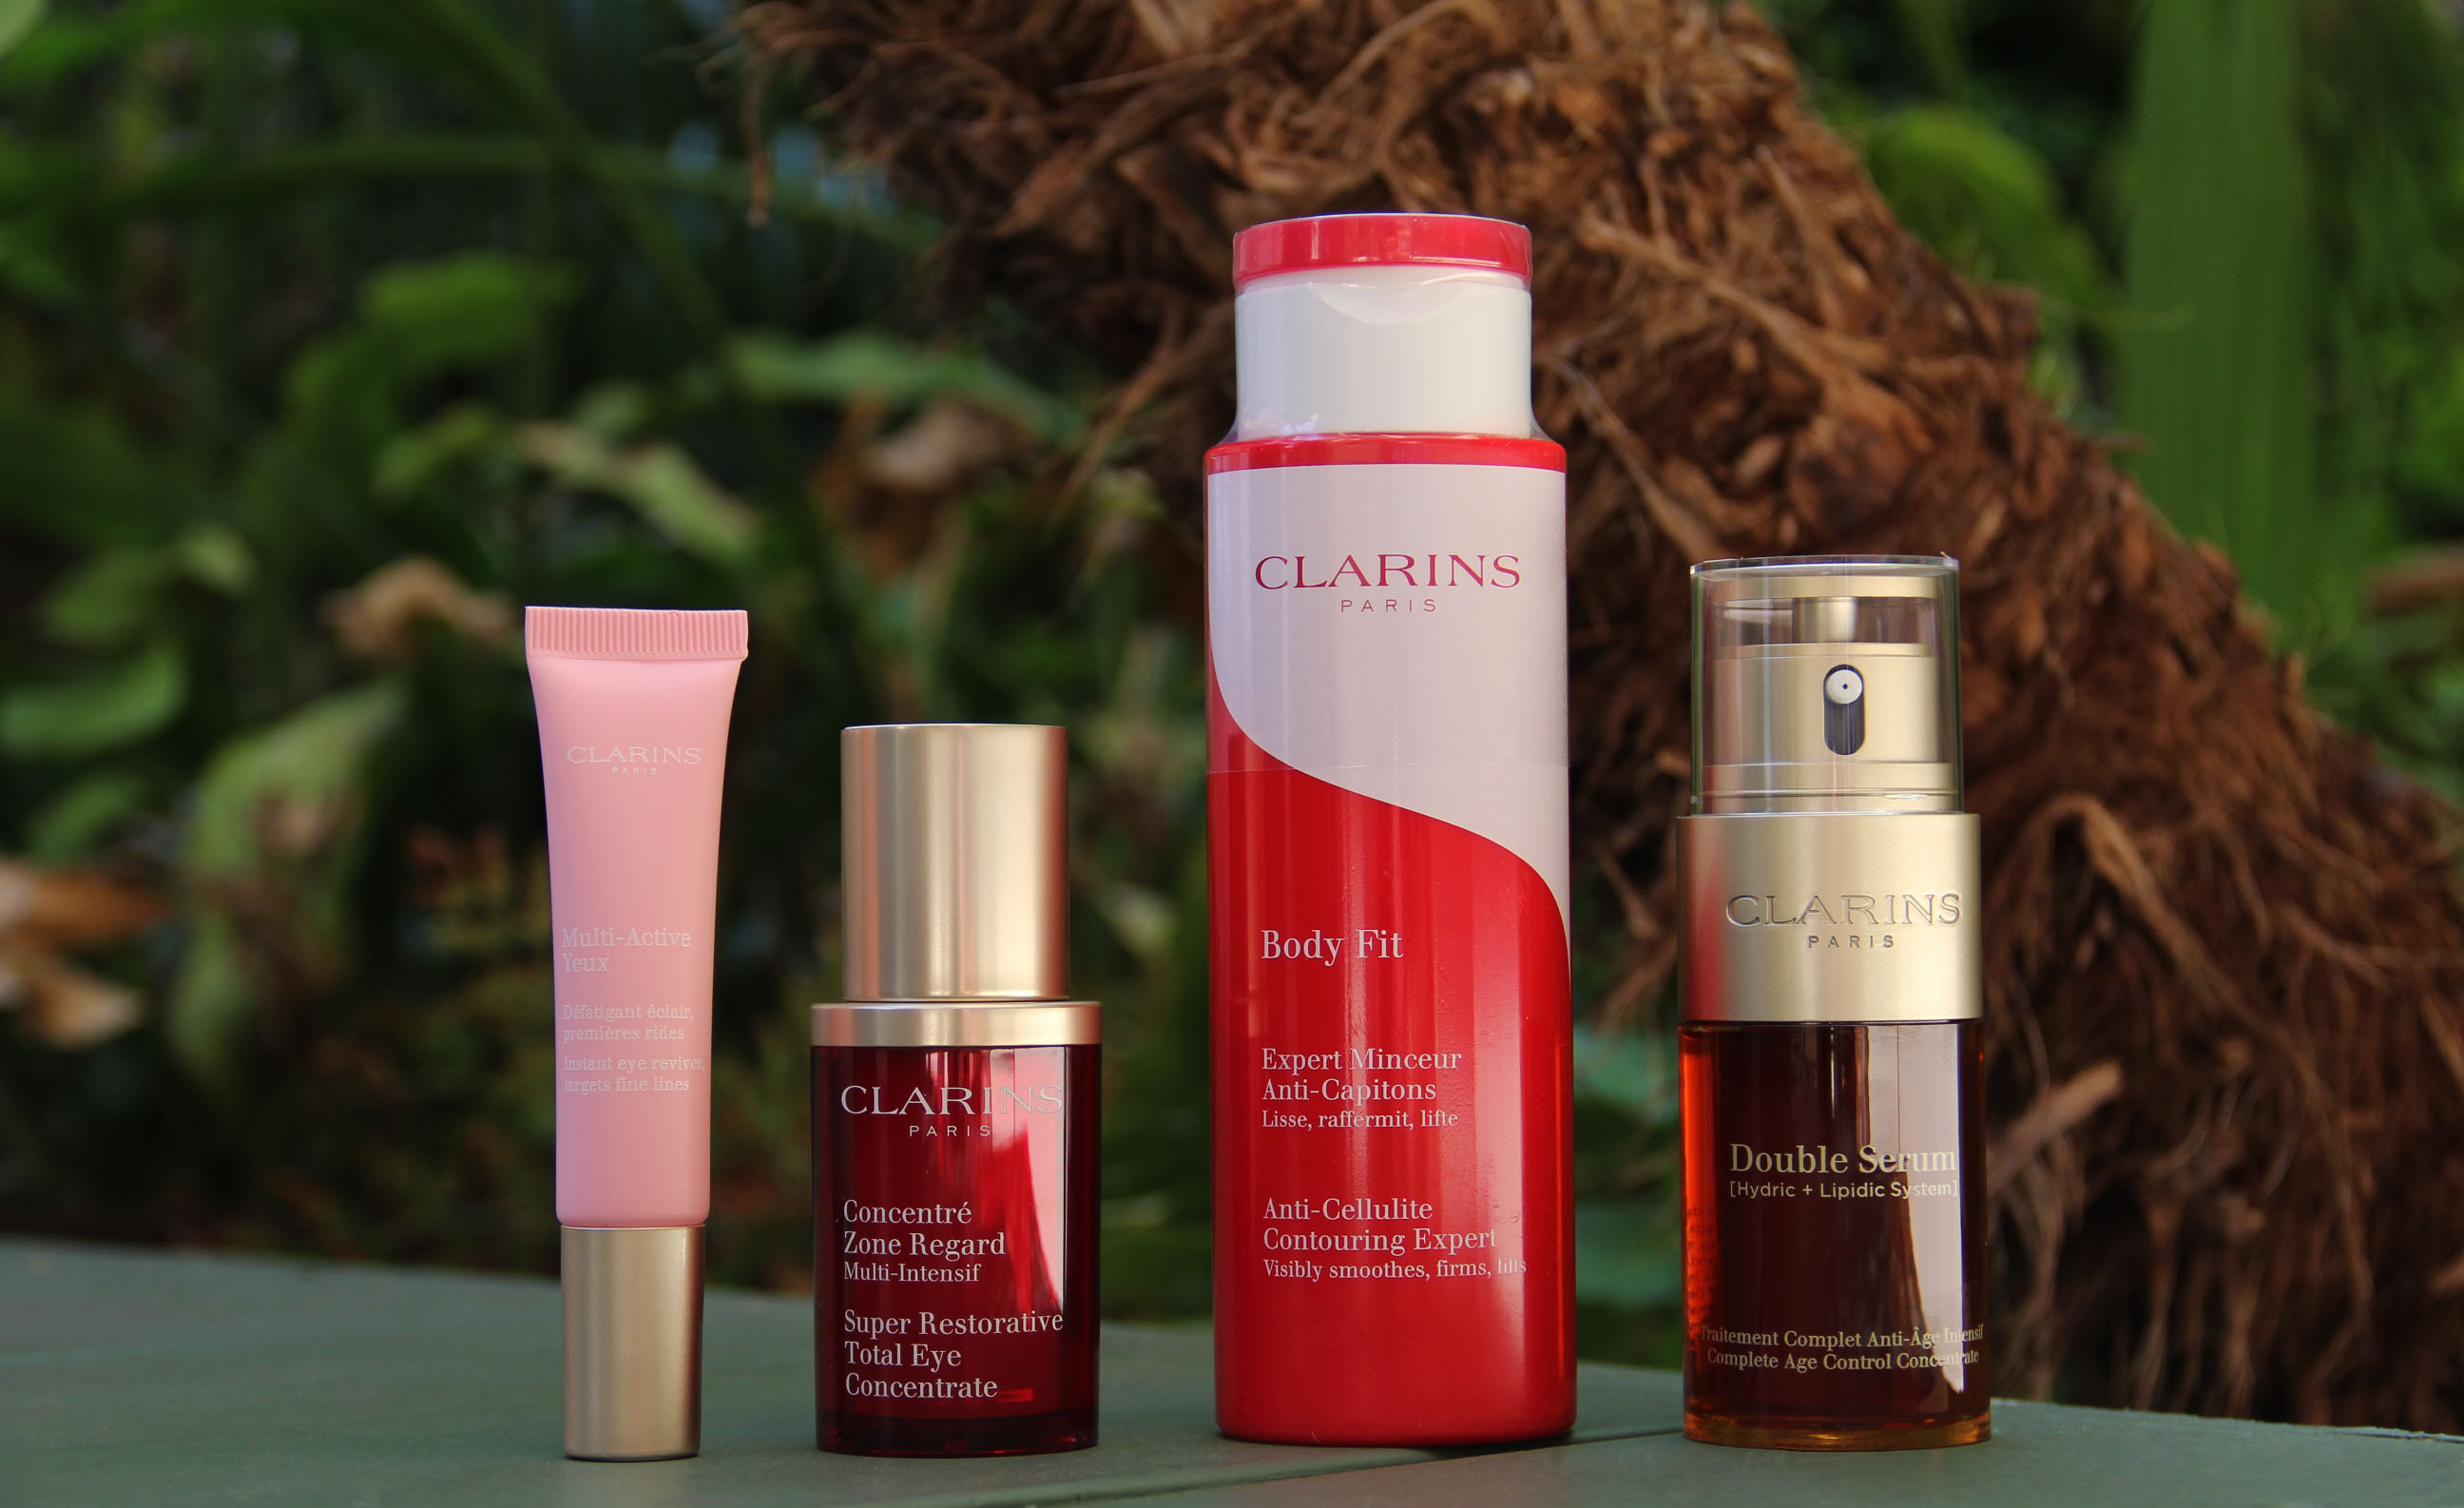 Clarins Products Eye, Face, & Body